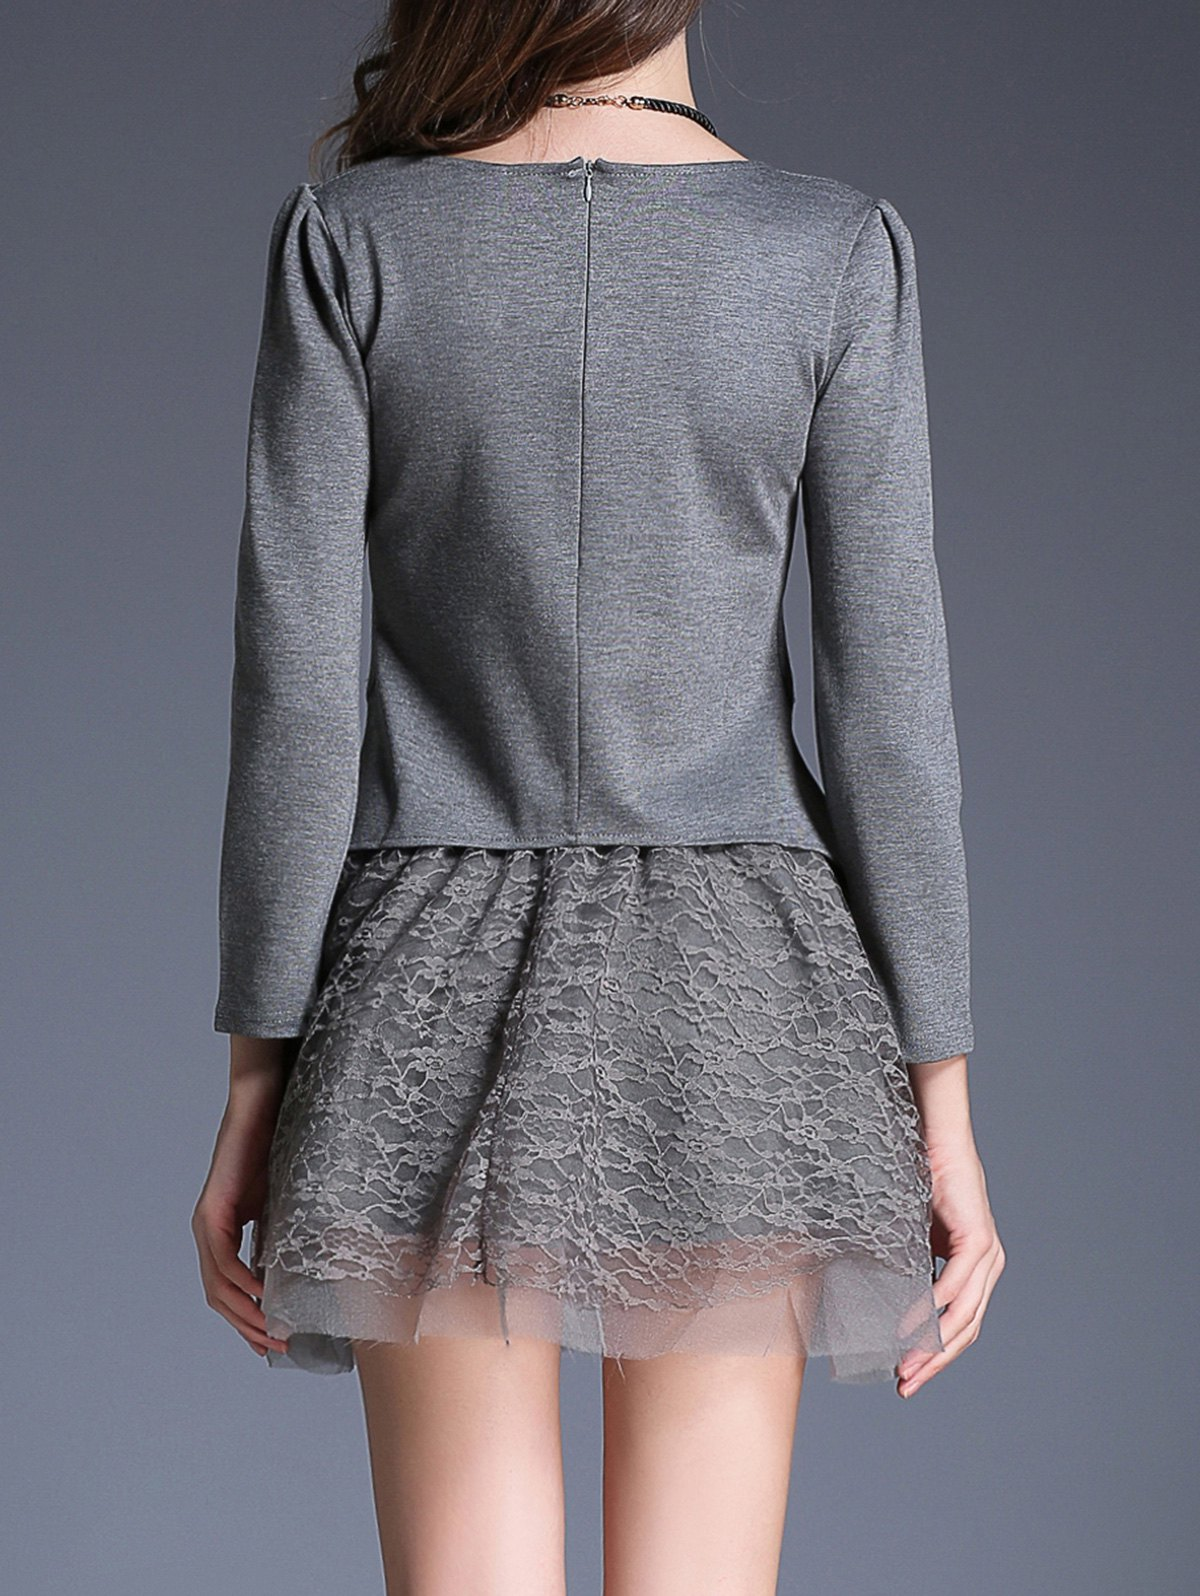 Pendant Embellished Tee and Lace Skirt Twinset - GRAY XL